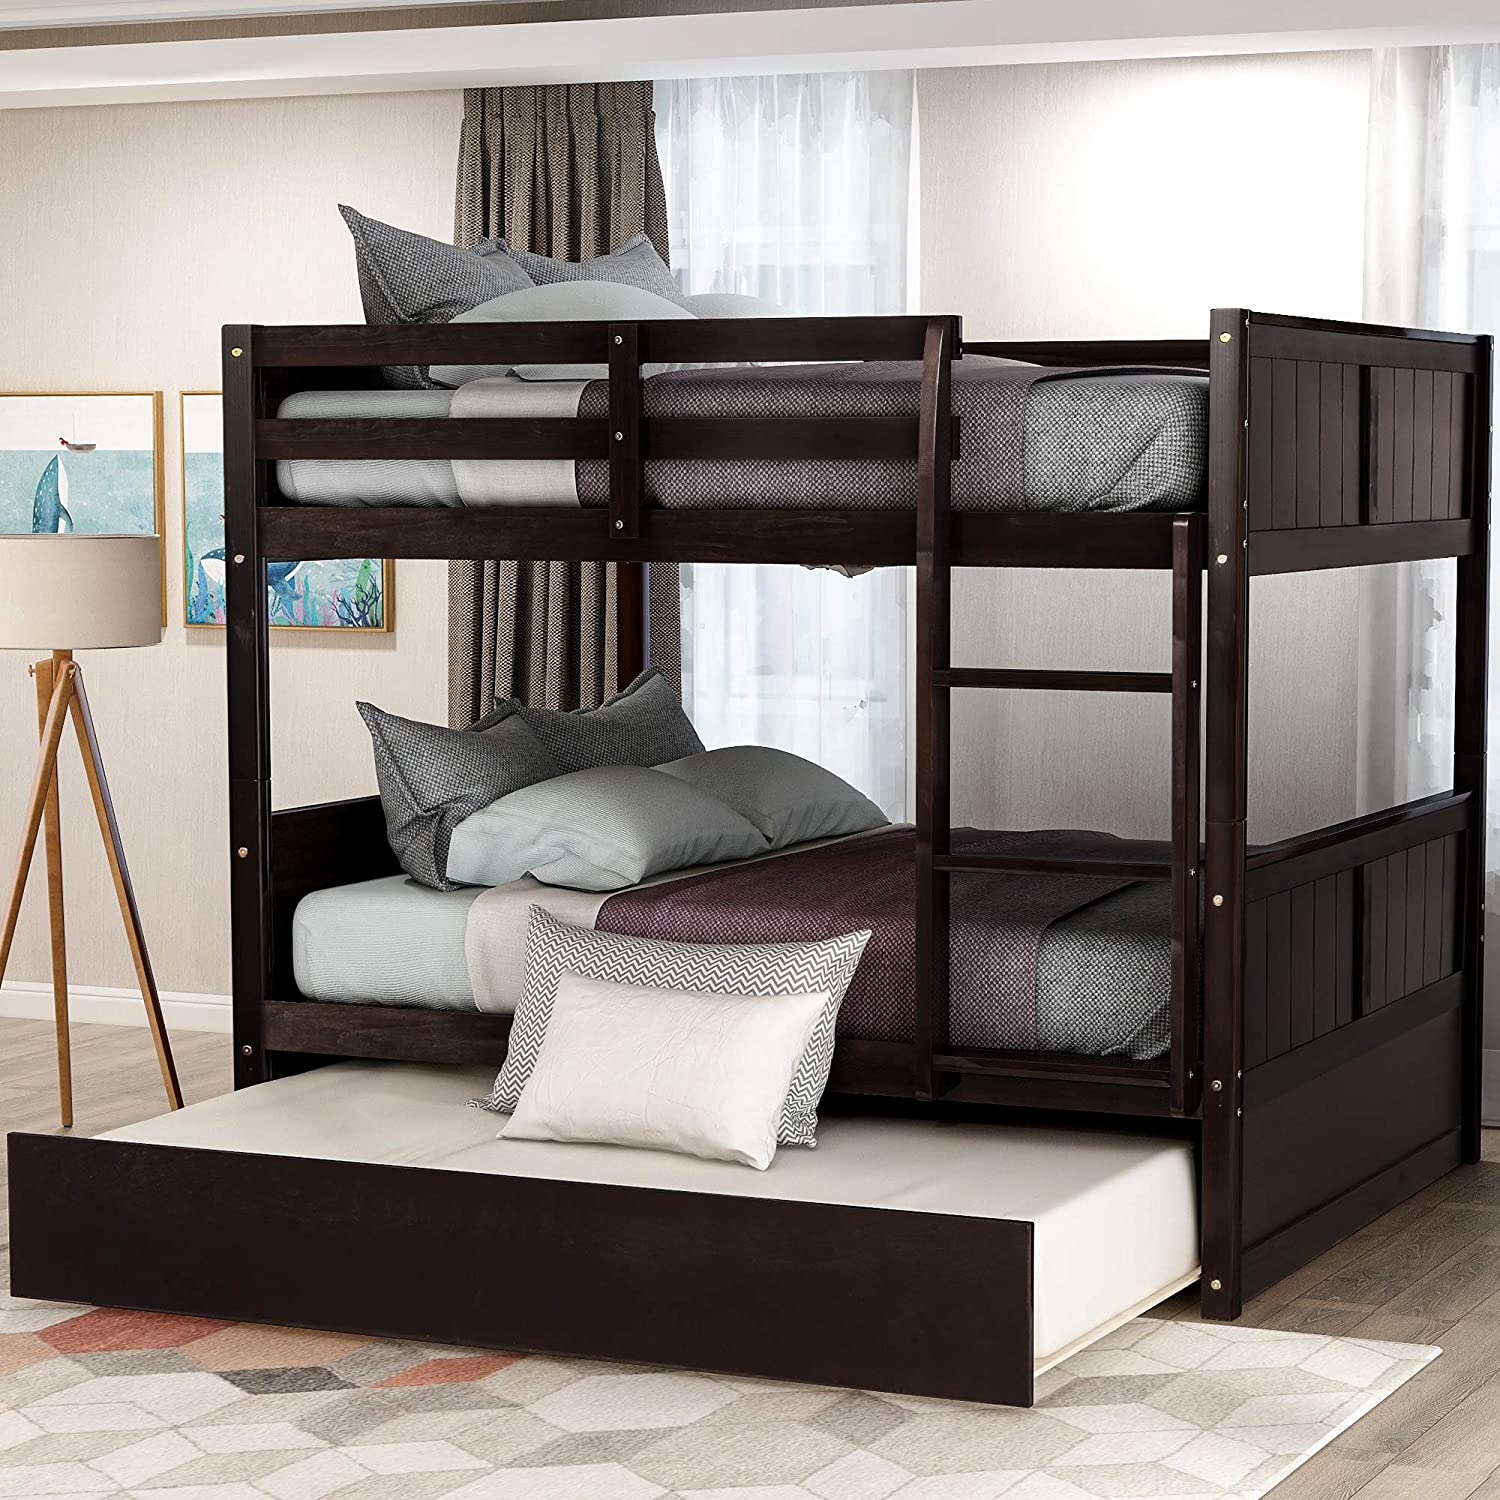 Full Over Bunk Bed for Bun Kids Teens Detachable Reservation High quality new Wood